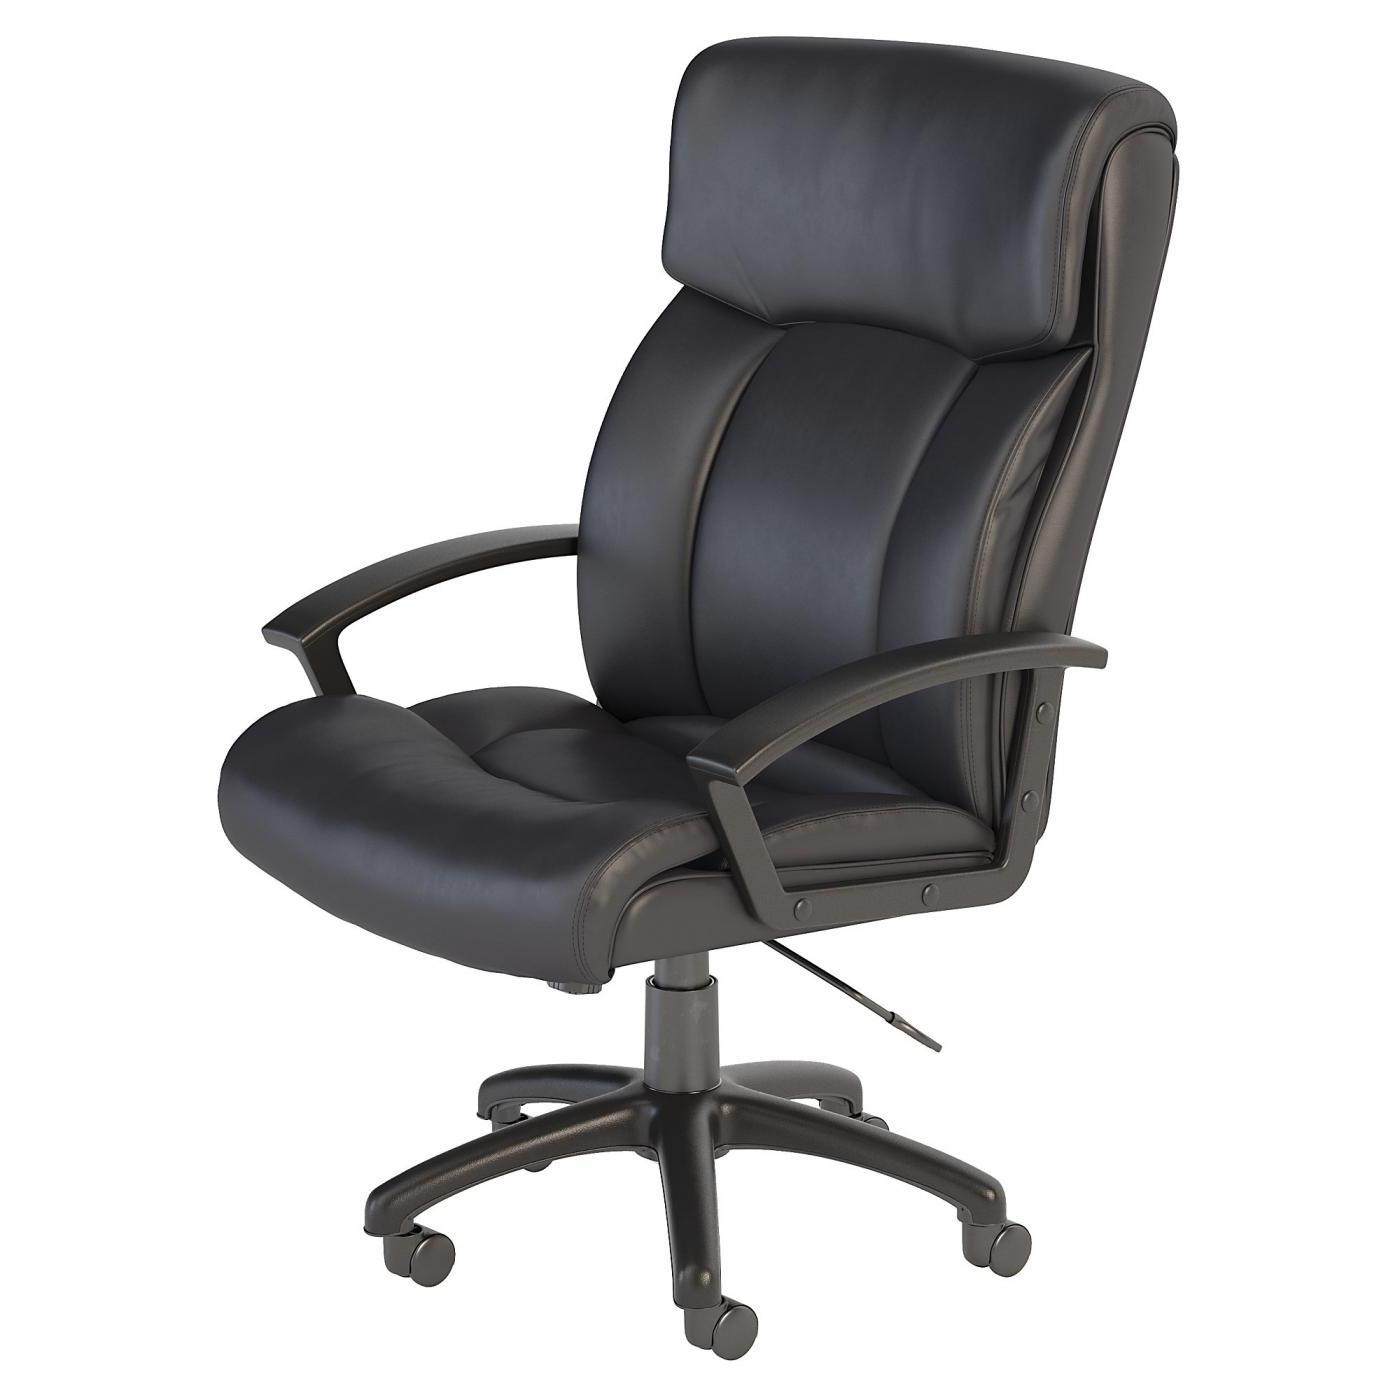 BUSH BUSINESS FURNITURE STANTON PLUS MID BACK LEATHER EXECUTIVE OFFICE CHAIR. FREE SHIPPING.  SALE DEDUCT 10% MORE ENTER '10percent' IN COUPON CODE BOX WHILE CHECKING OUT.